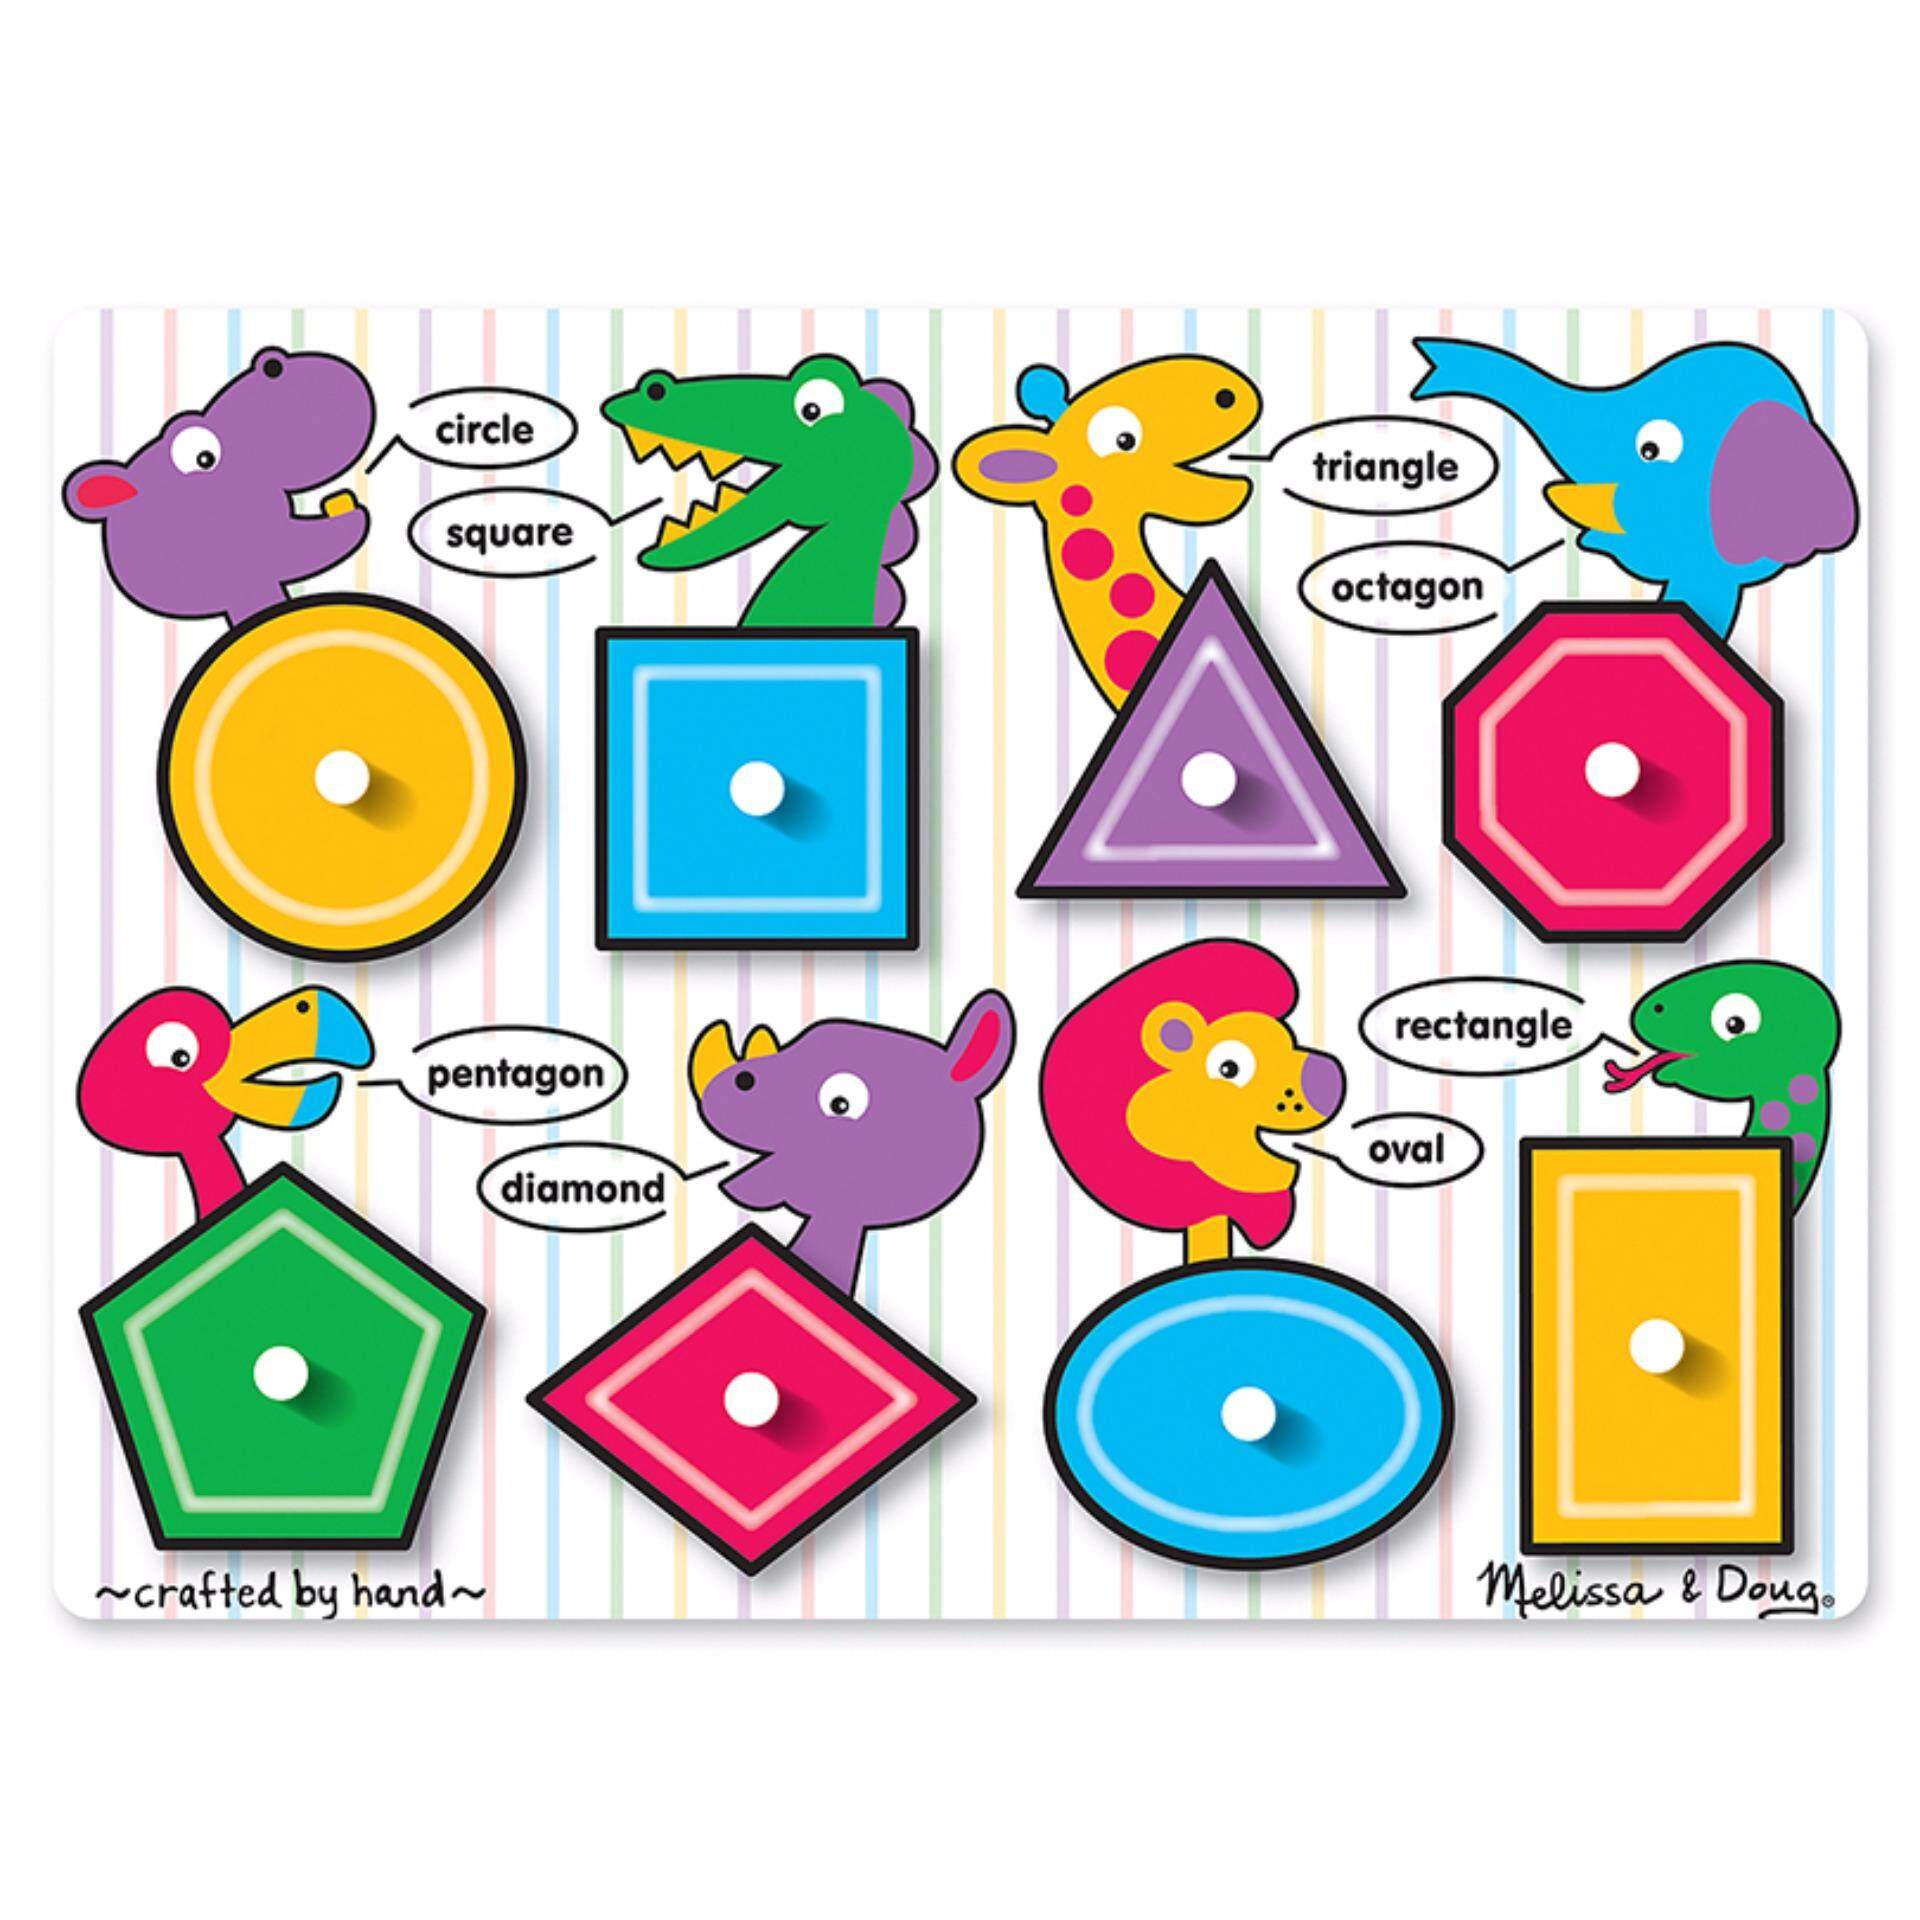 Melissa & Doug Wooden Shapes Peg Puzzle